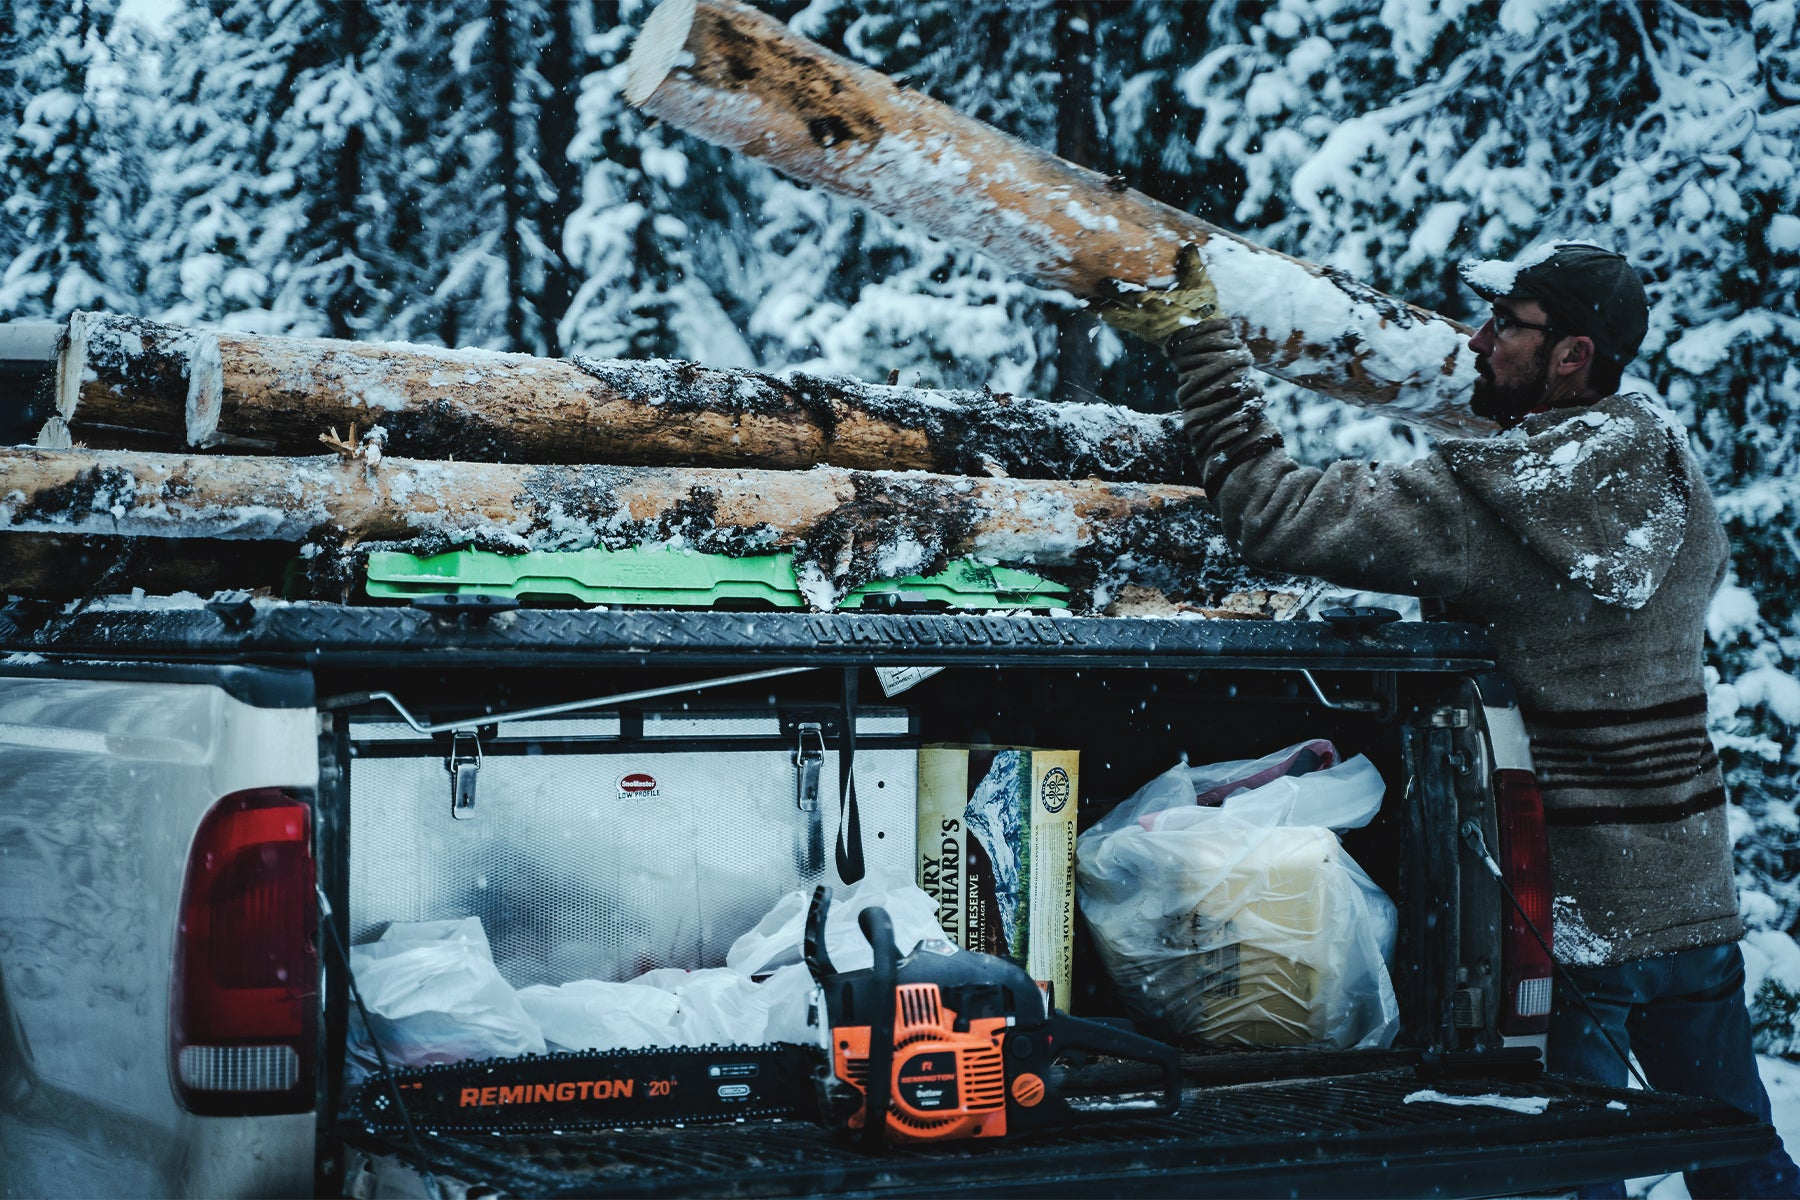 off grid packing list and provisions